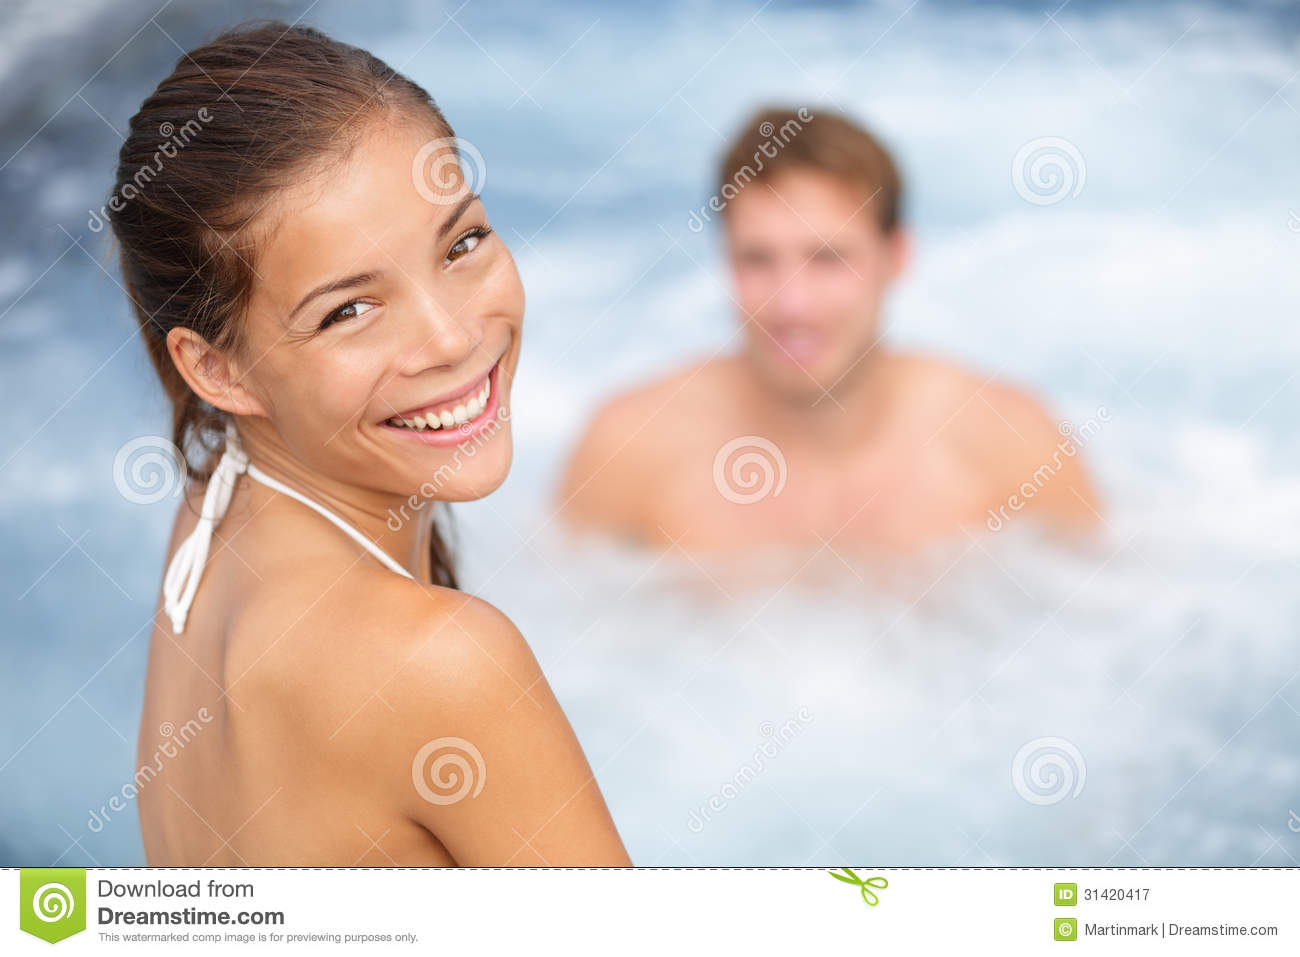 Spa resort jacuzzi hot tub couple, woman and man